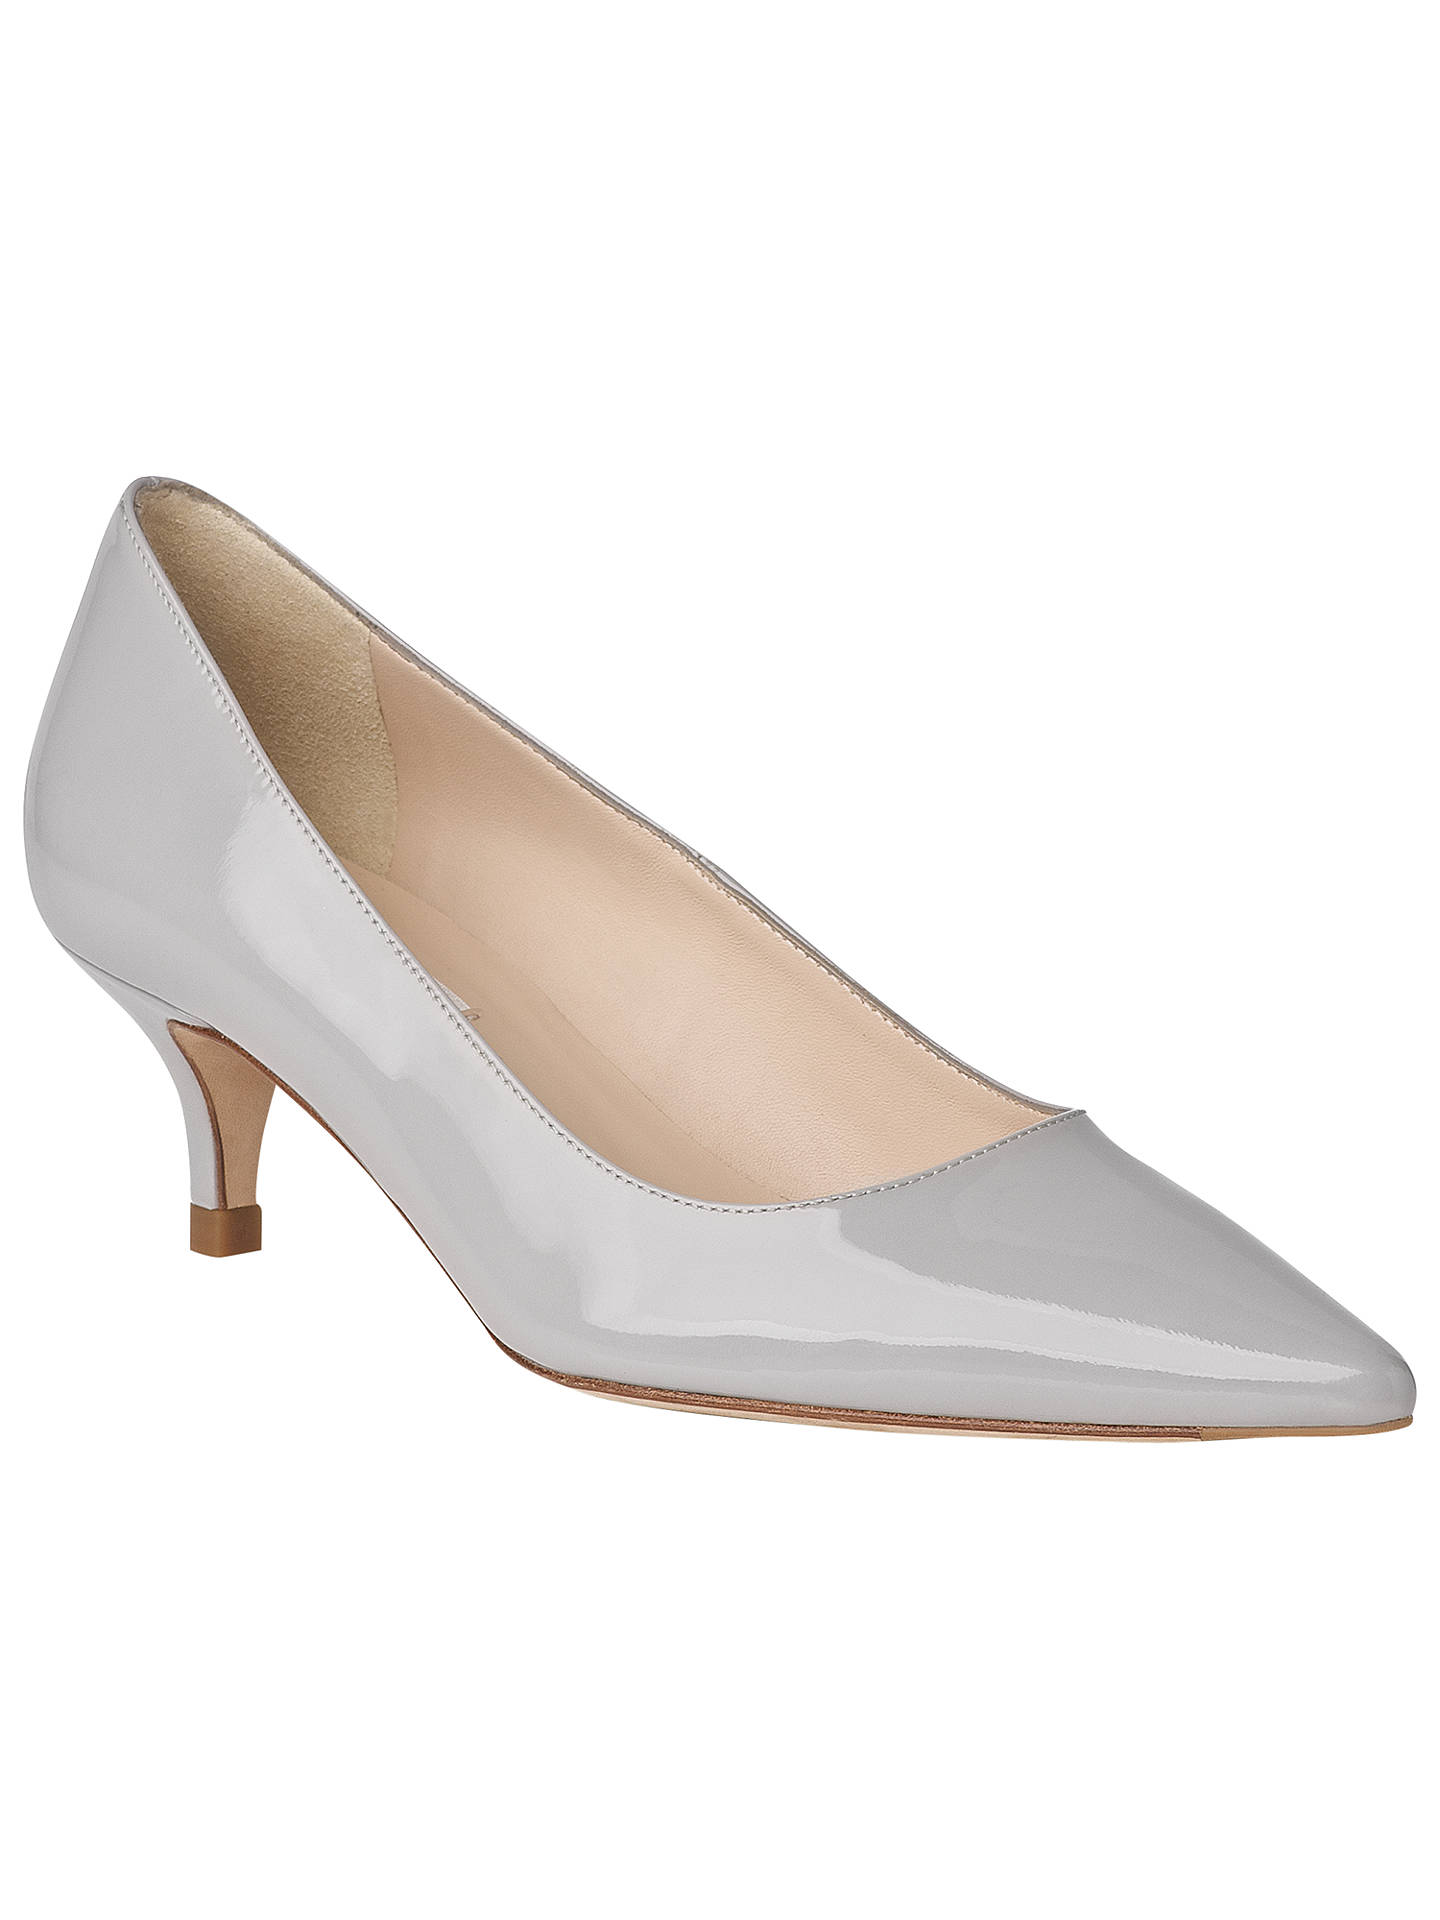 8576c6d8624ac Buy L.K. Bennett Minu Court Shoes, Mist, 5 Online at johnlewis.com ...